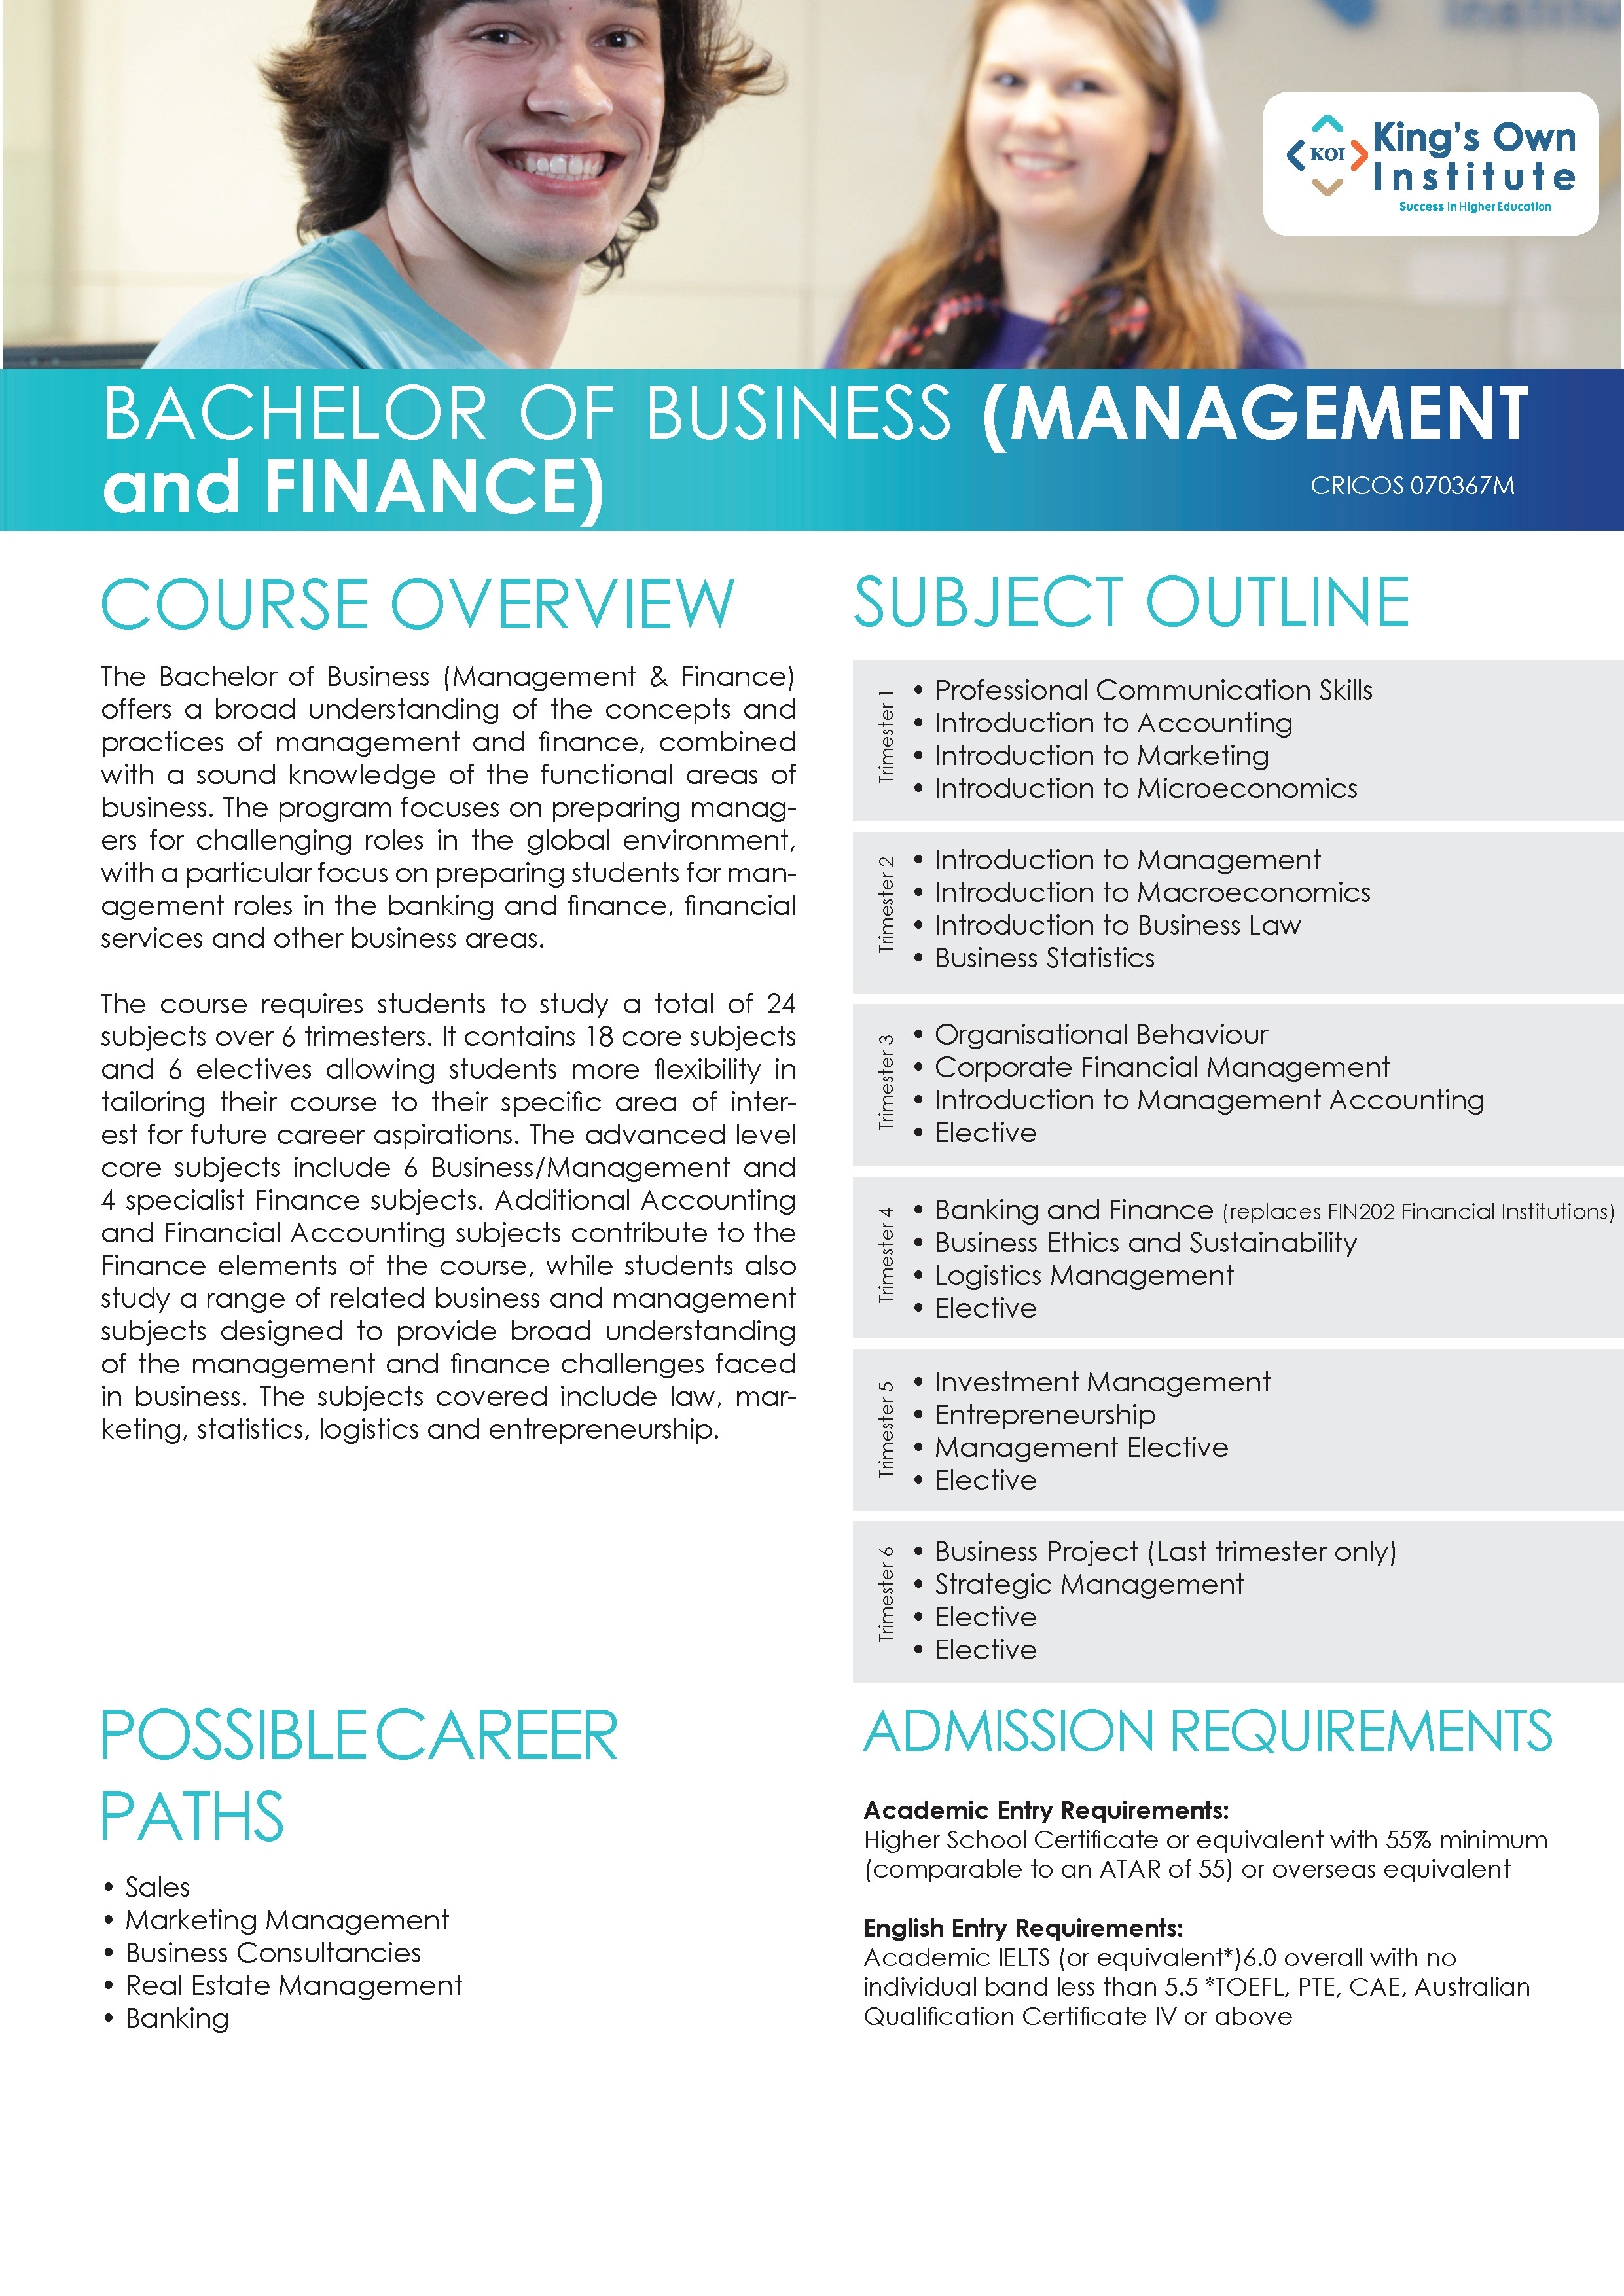 BACHELOR OF BUSINESS (MANAGEMENT and FINANCE)